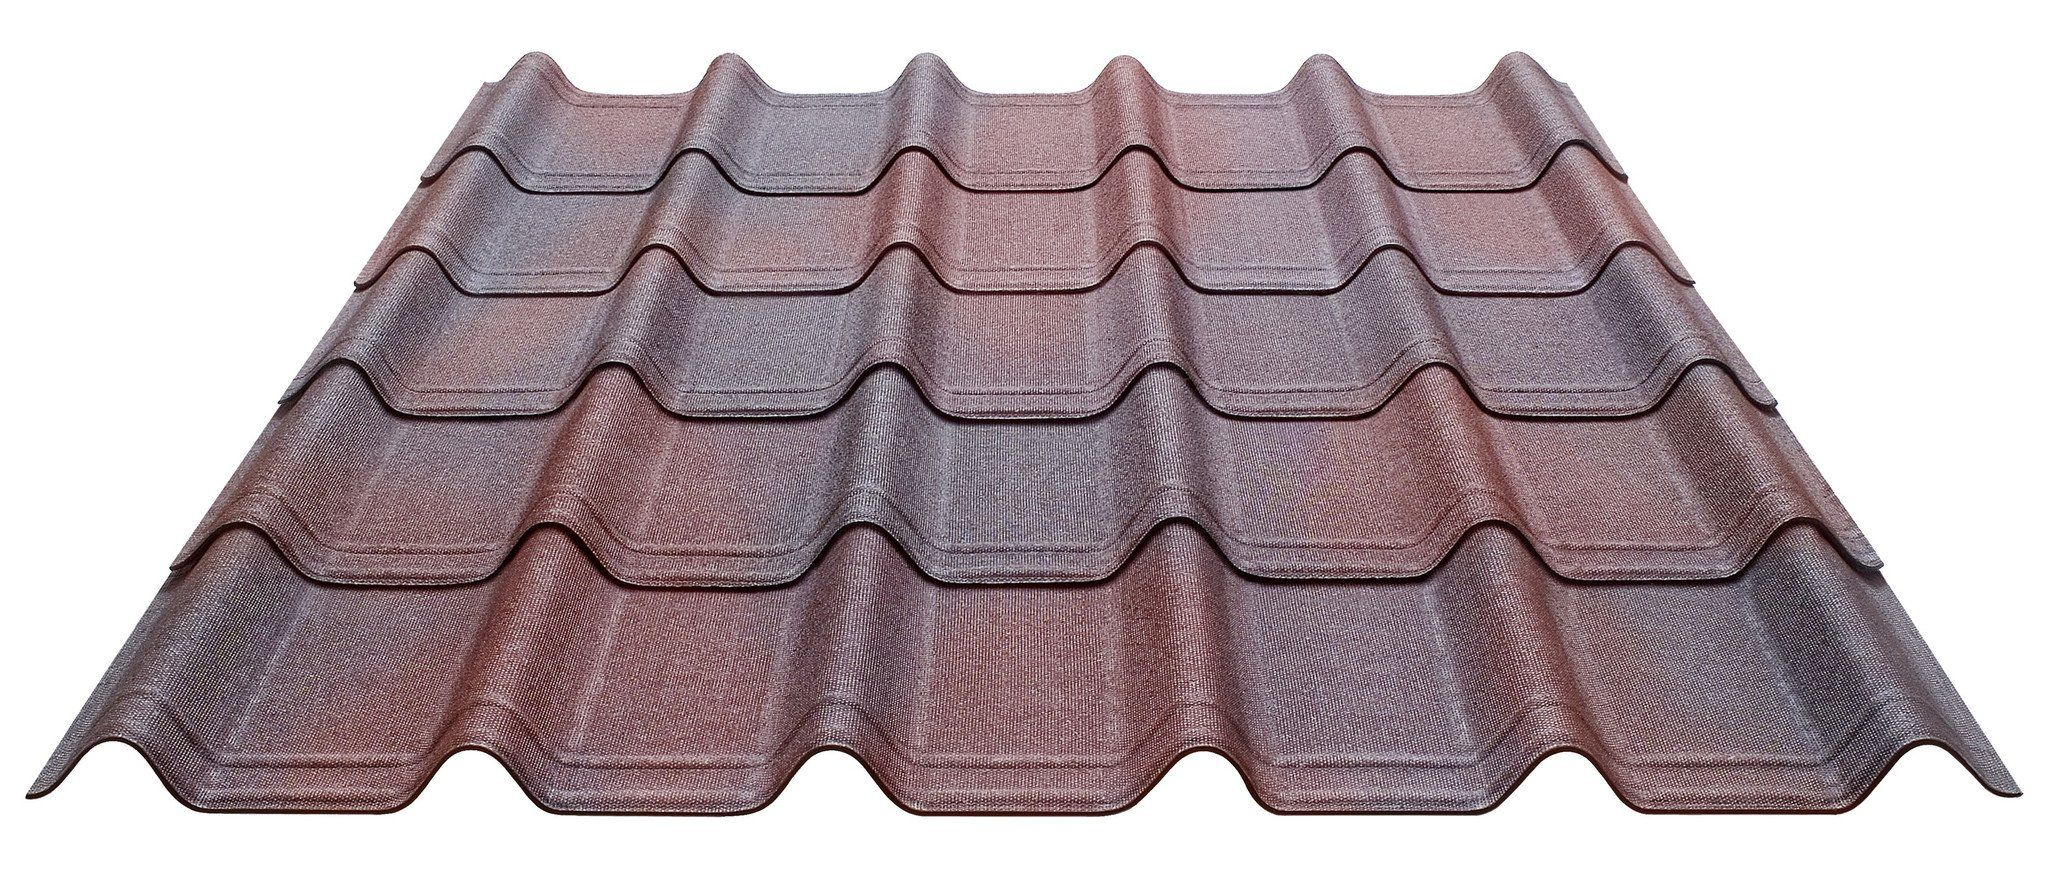 Onduvilla Shingles 1 Pack Of 10 Shingles Siena Brown Shingling Roofing Roof Shingles